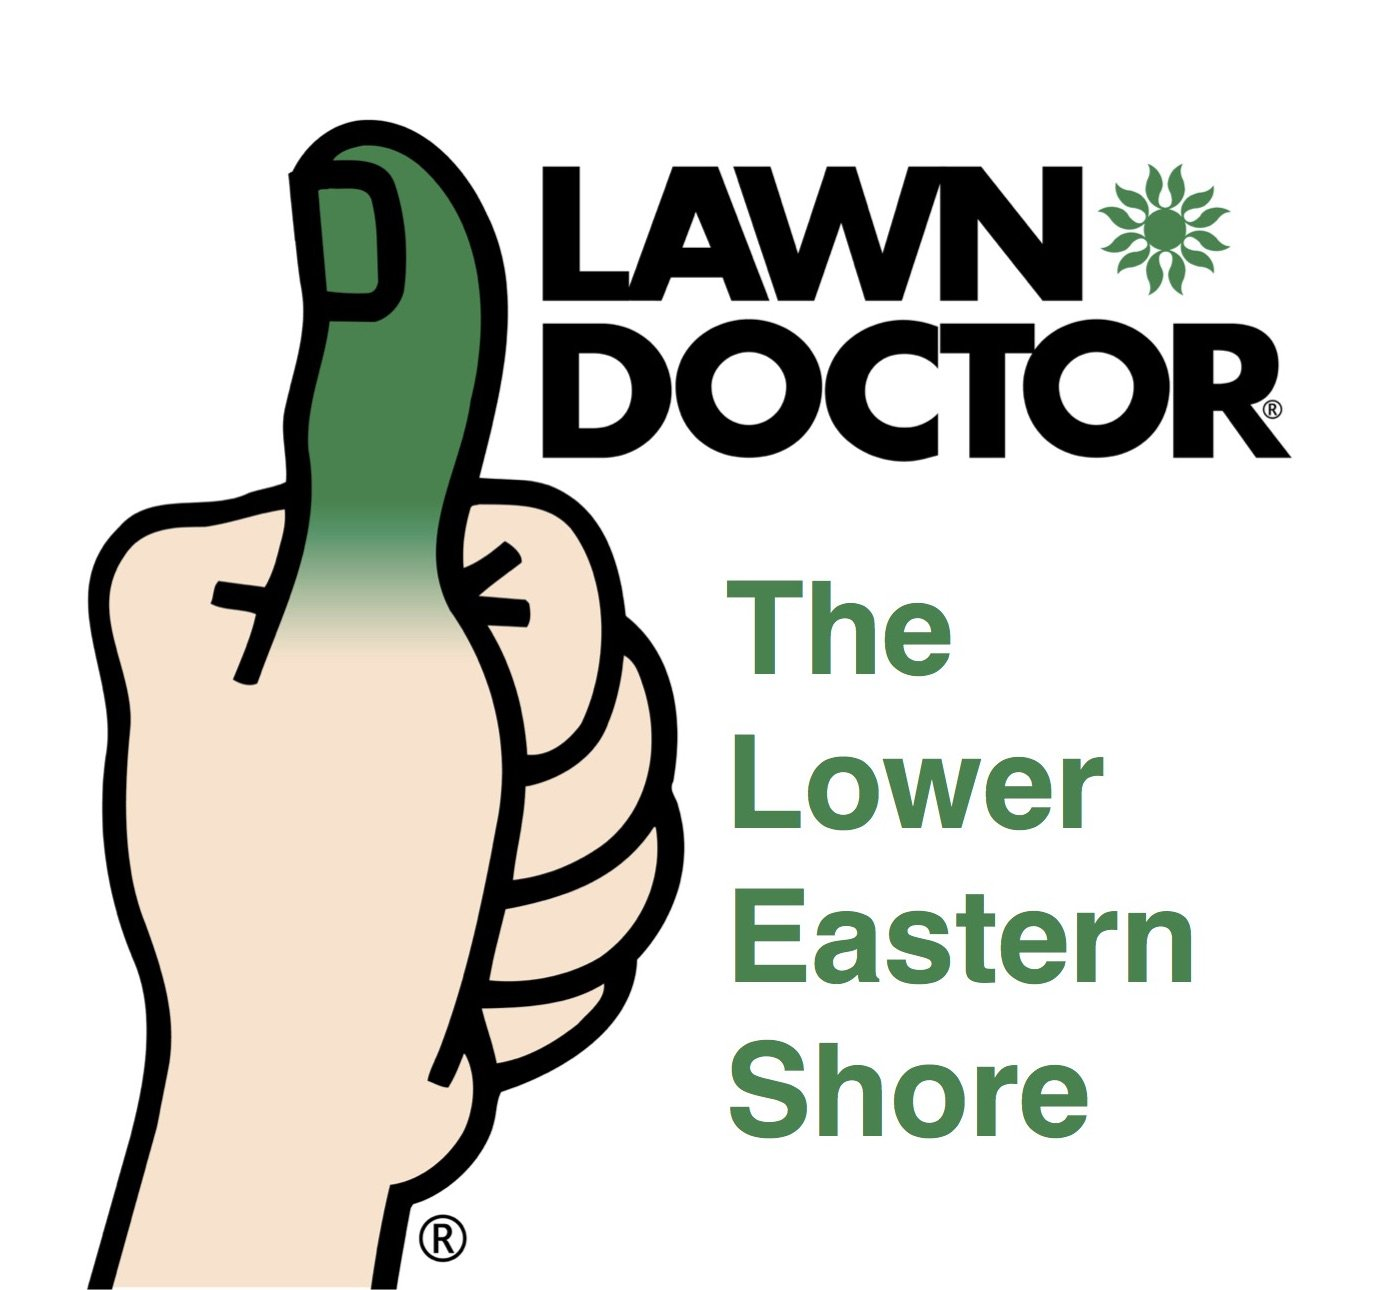 Lawn Doctor of the Lower Eastern Shore